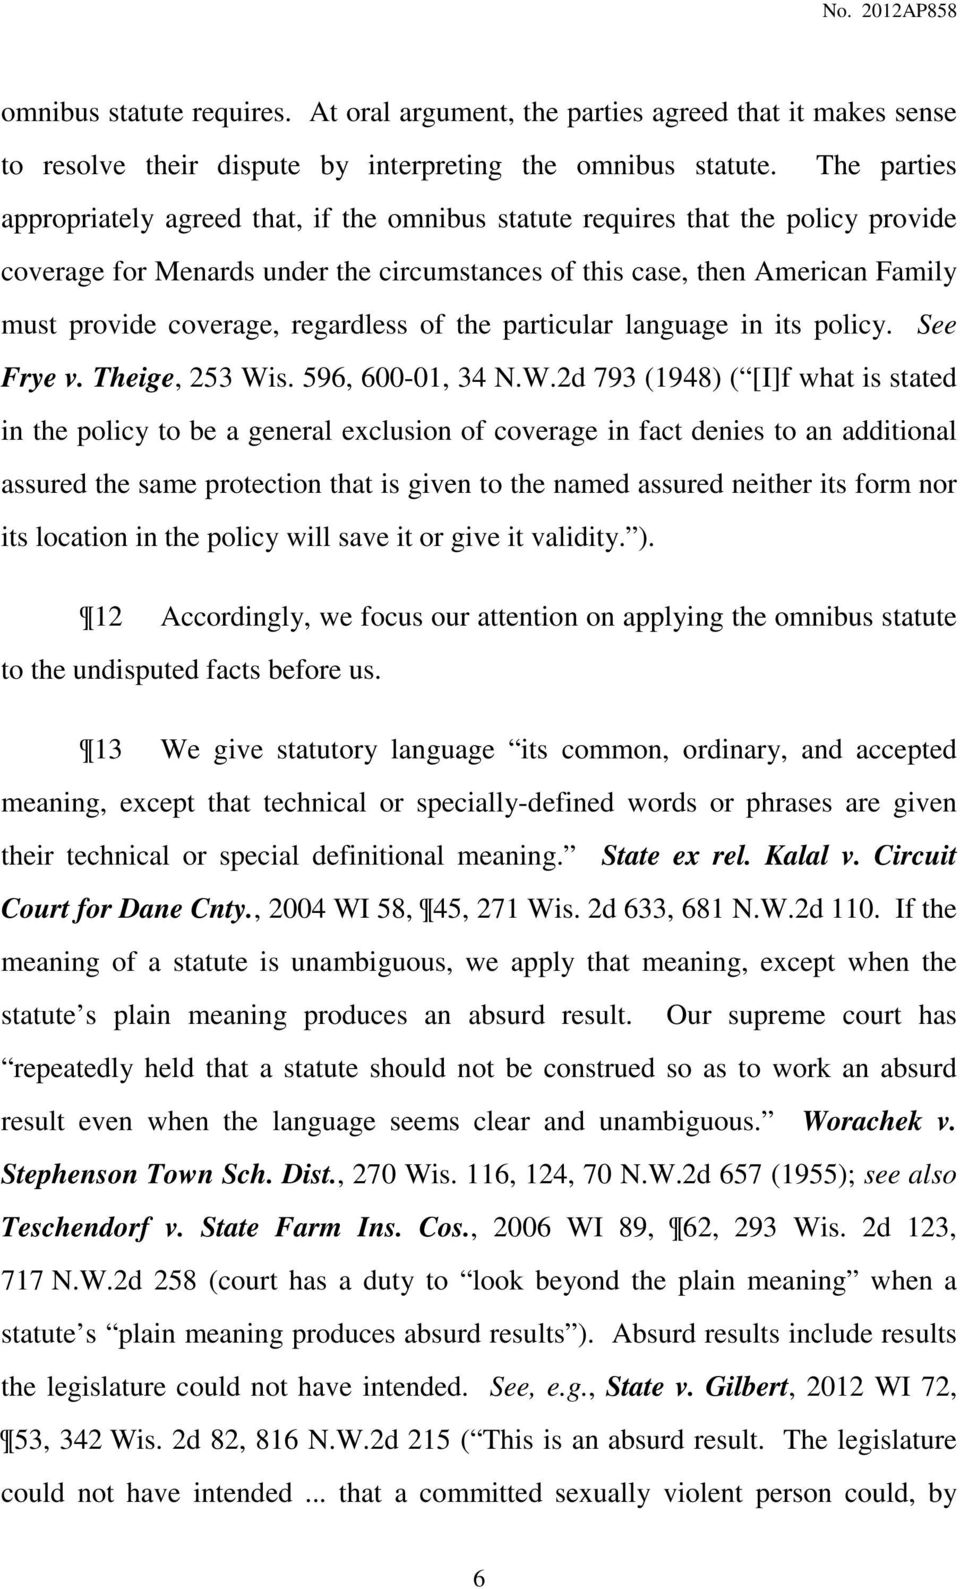 regardless of the particular language in its policy. See Frye v. Theige, 253 Wi